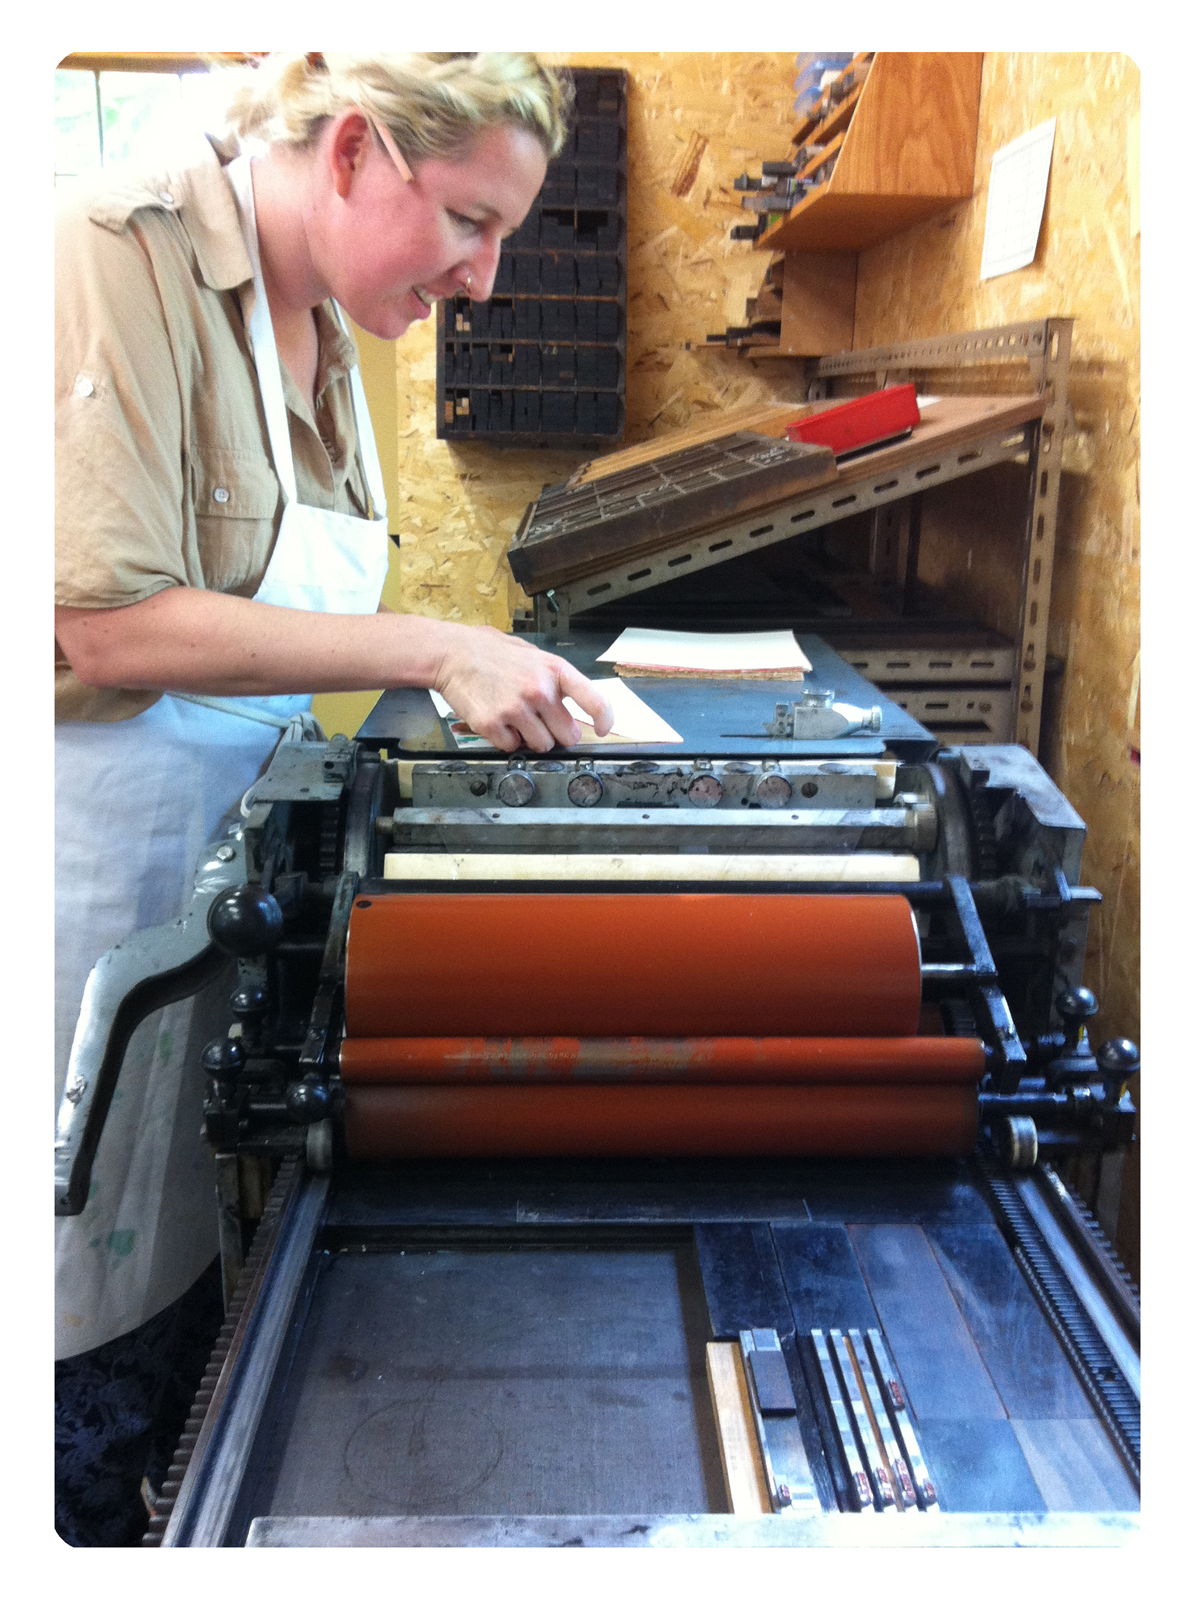 Julie Kesti, Letterpress, Book, Workshop, Printmaking, Type, Vandercook, Lesson